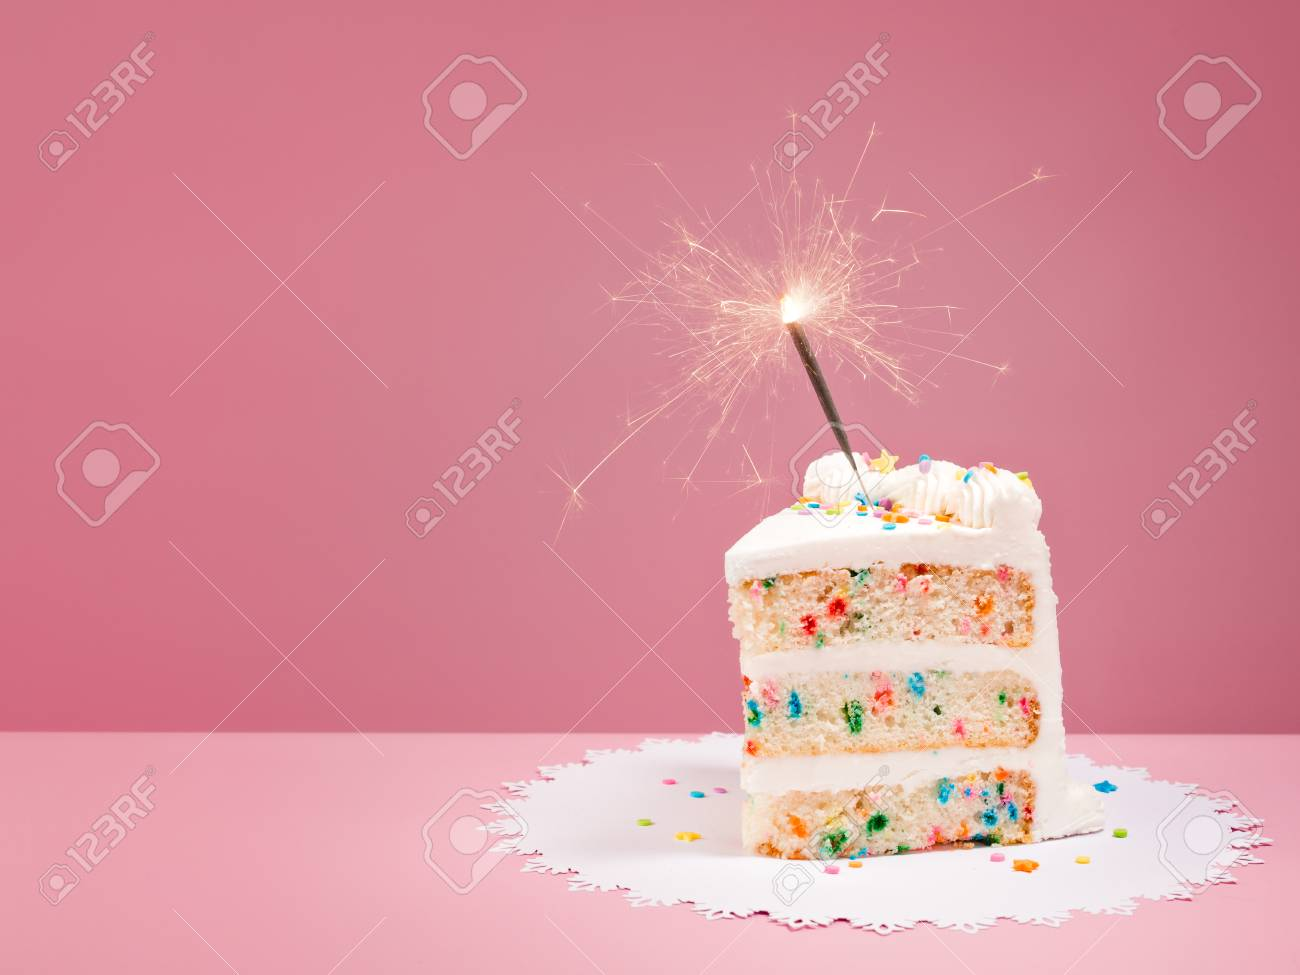 Slice Of Colorful Birthday Confetti Cake With A Lit Sparkler Over Pink Background Stock